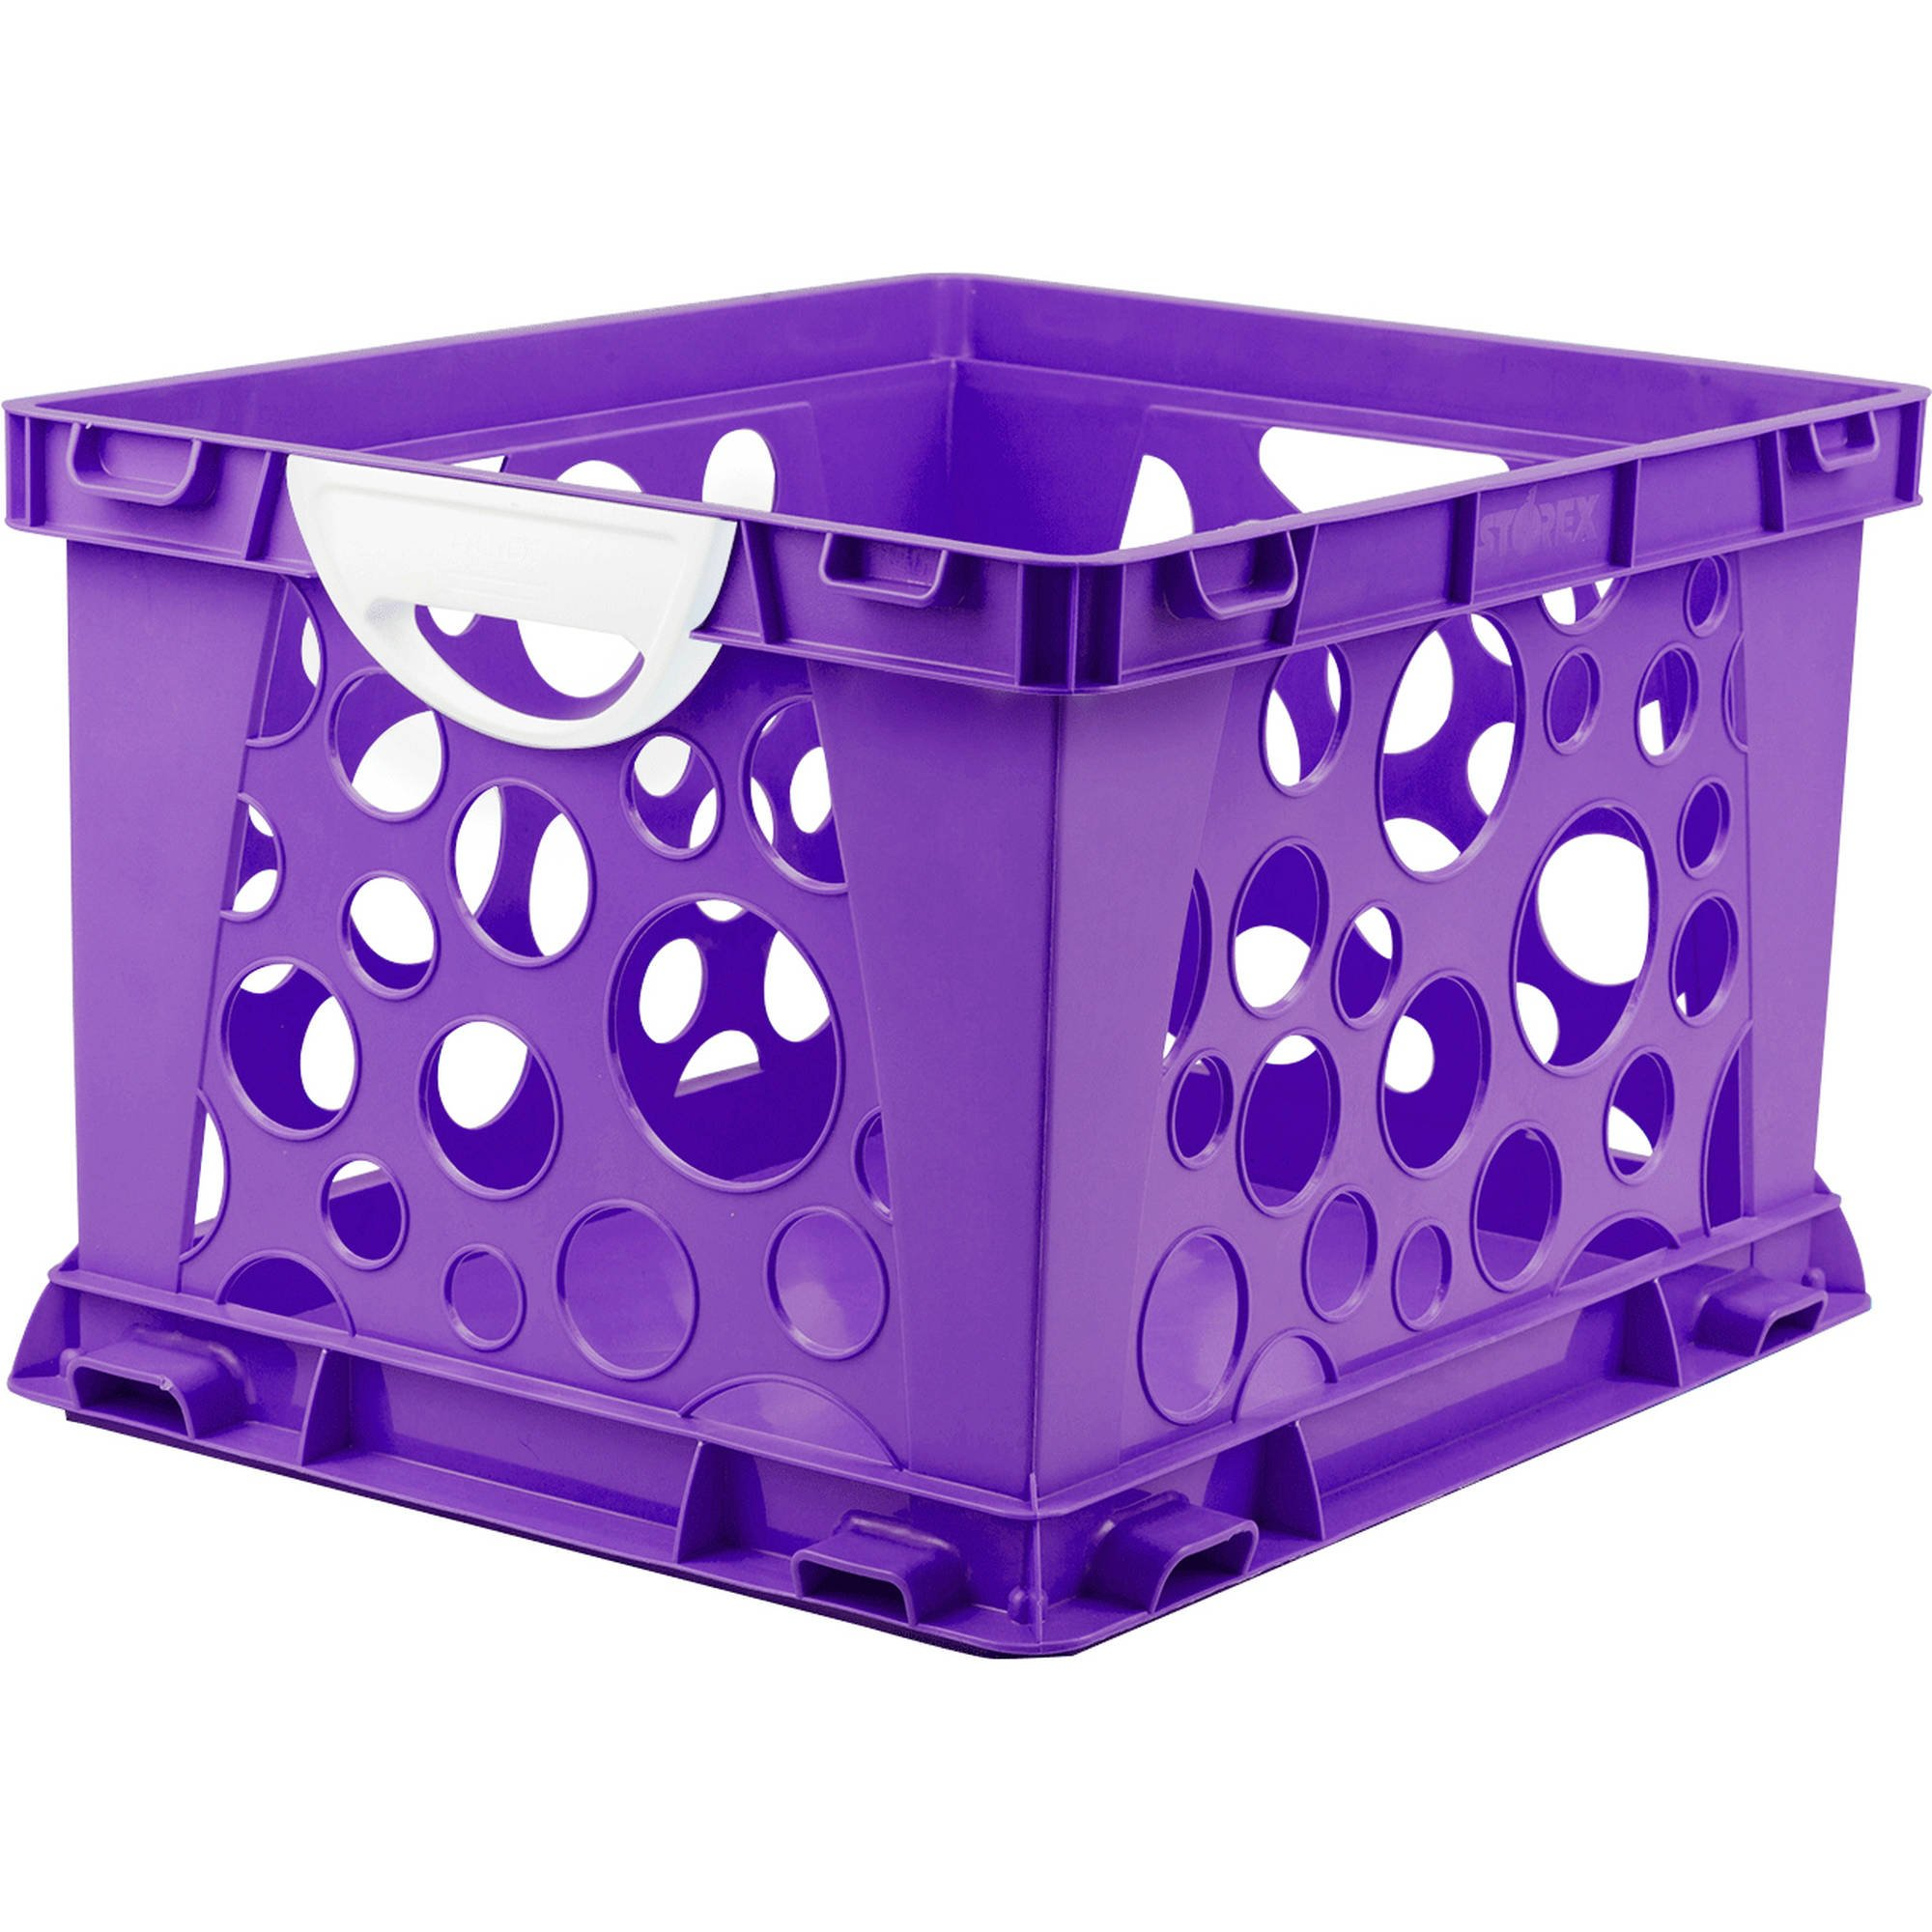 Indoor Large File Crate Storage with Handles, in Purple Color ( 3 PACK ) by Storex (Image #1)